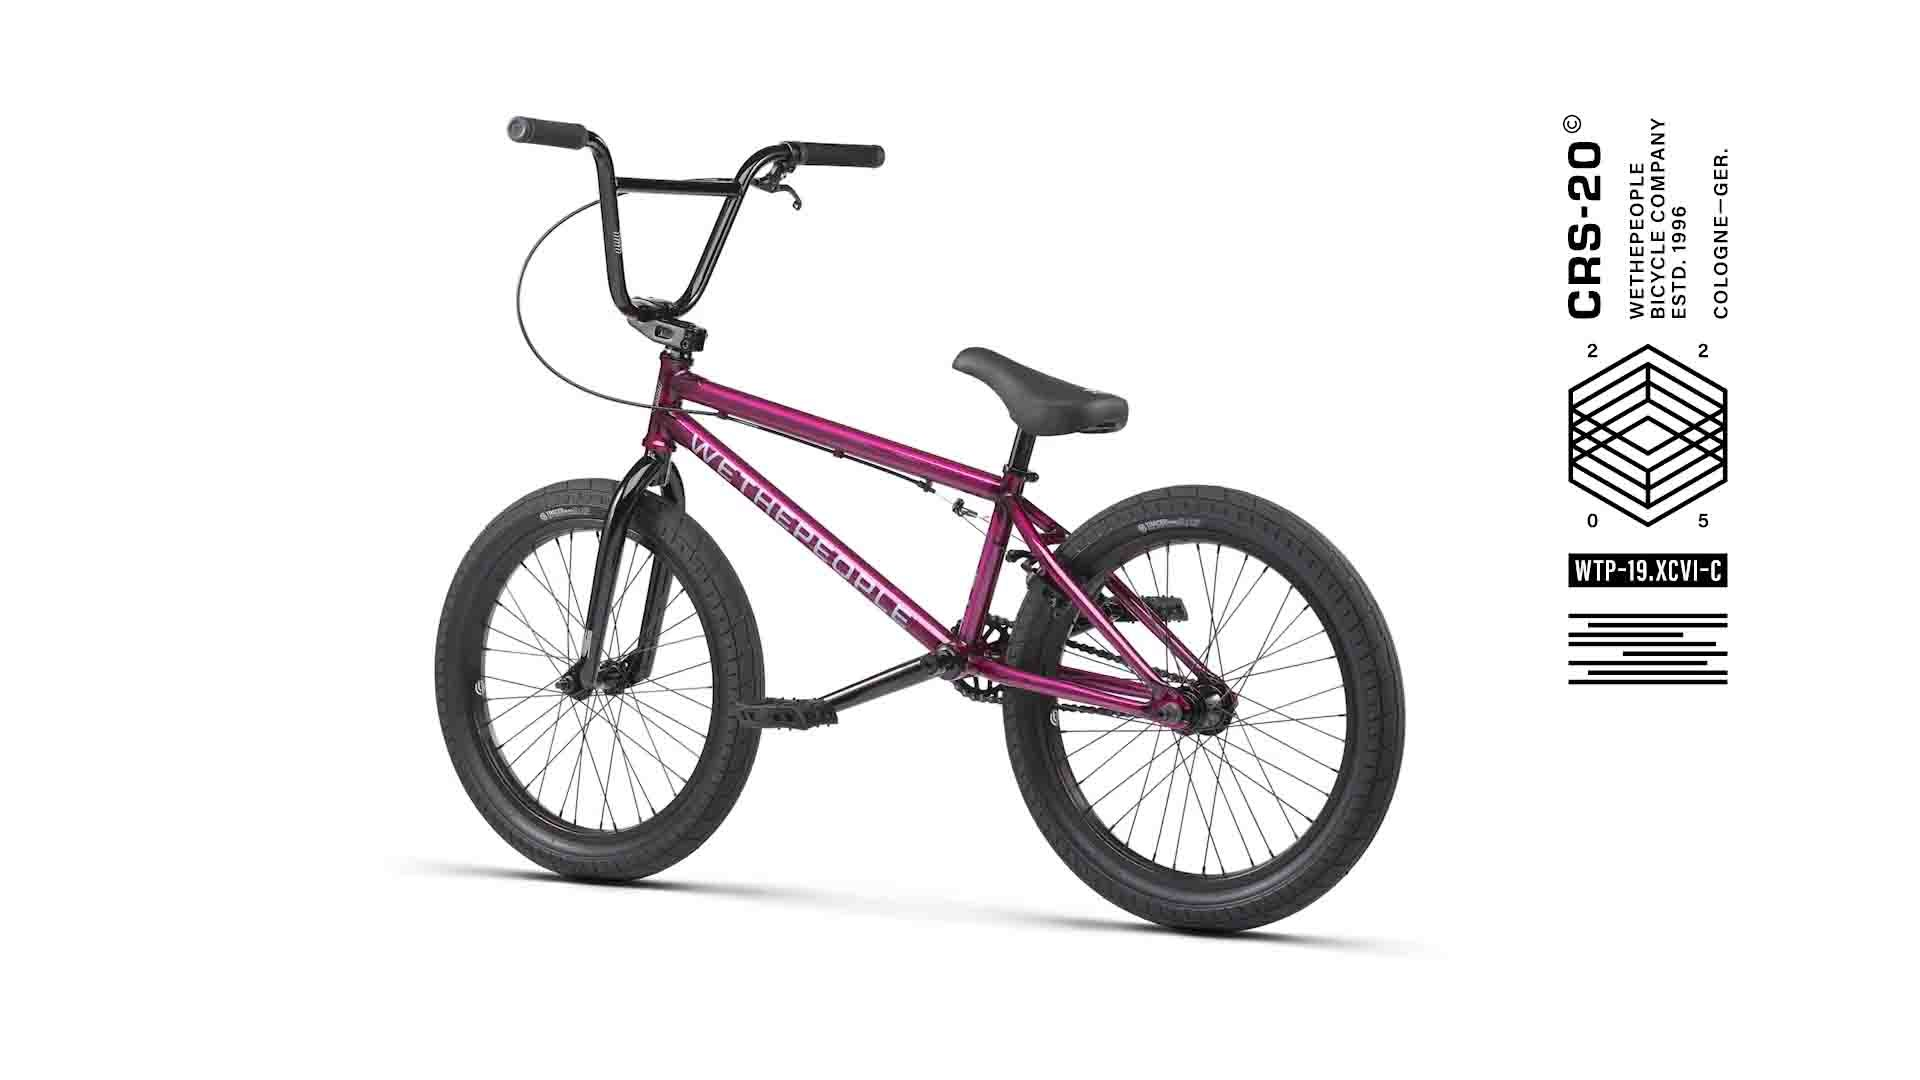 The CRS FC 2021 Complete Bike - WETHEPEOPLE BMX